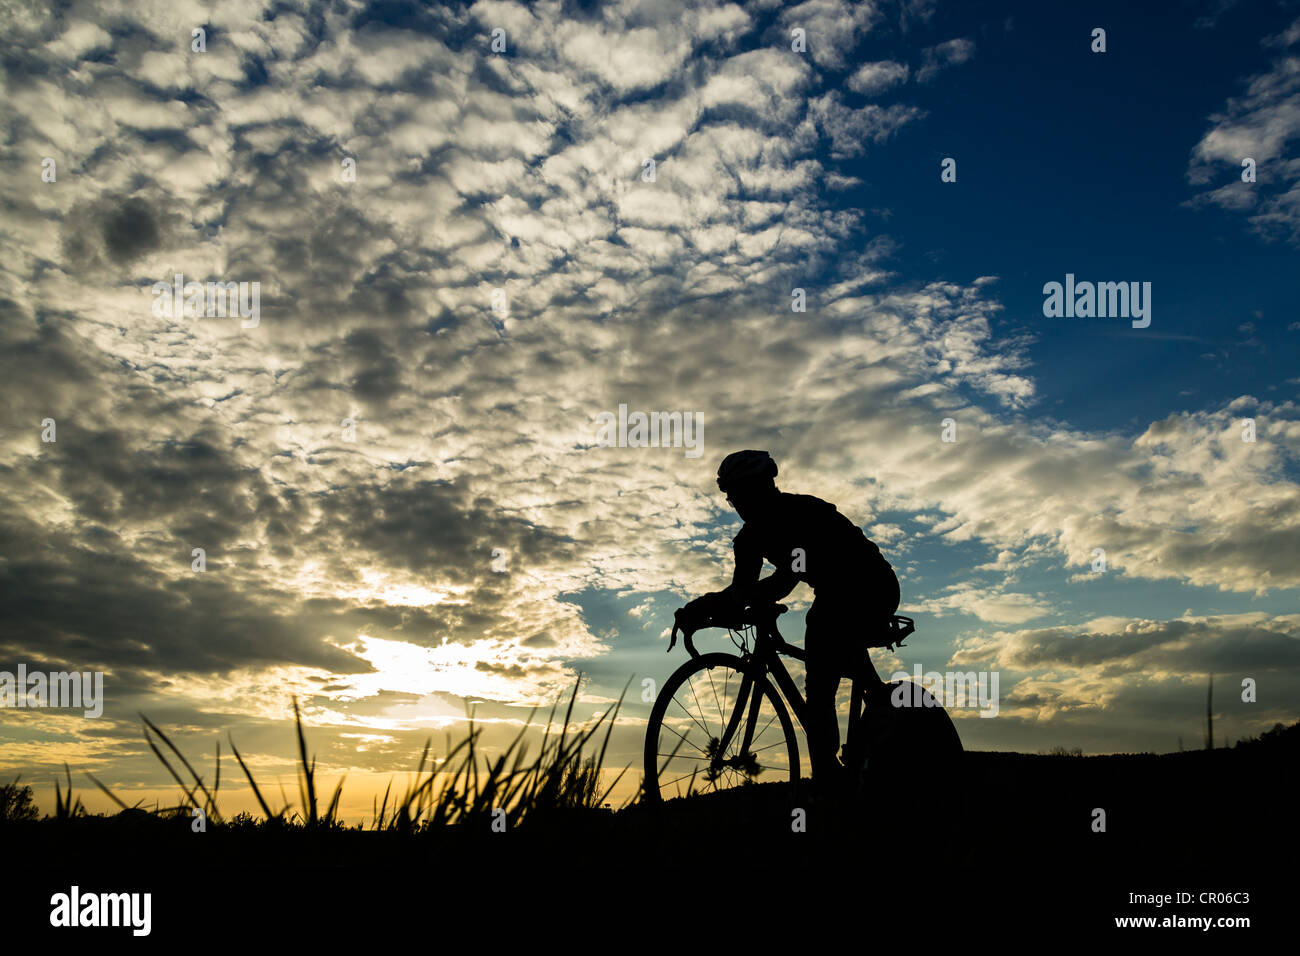 silhouette of a cyclis - Stock Image